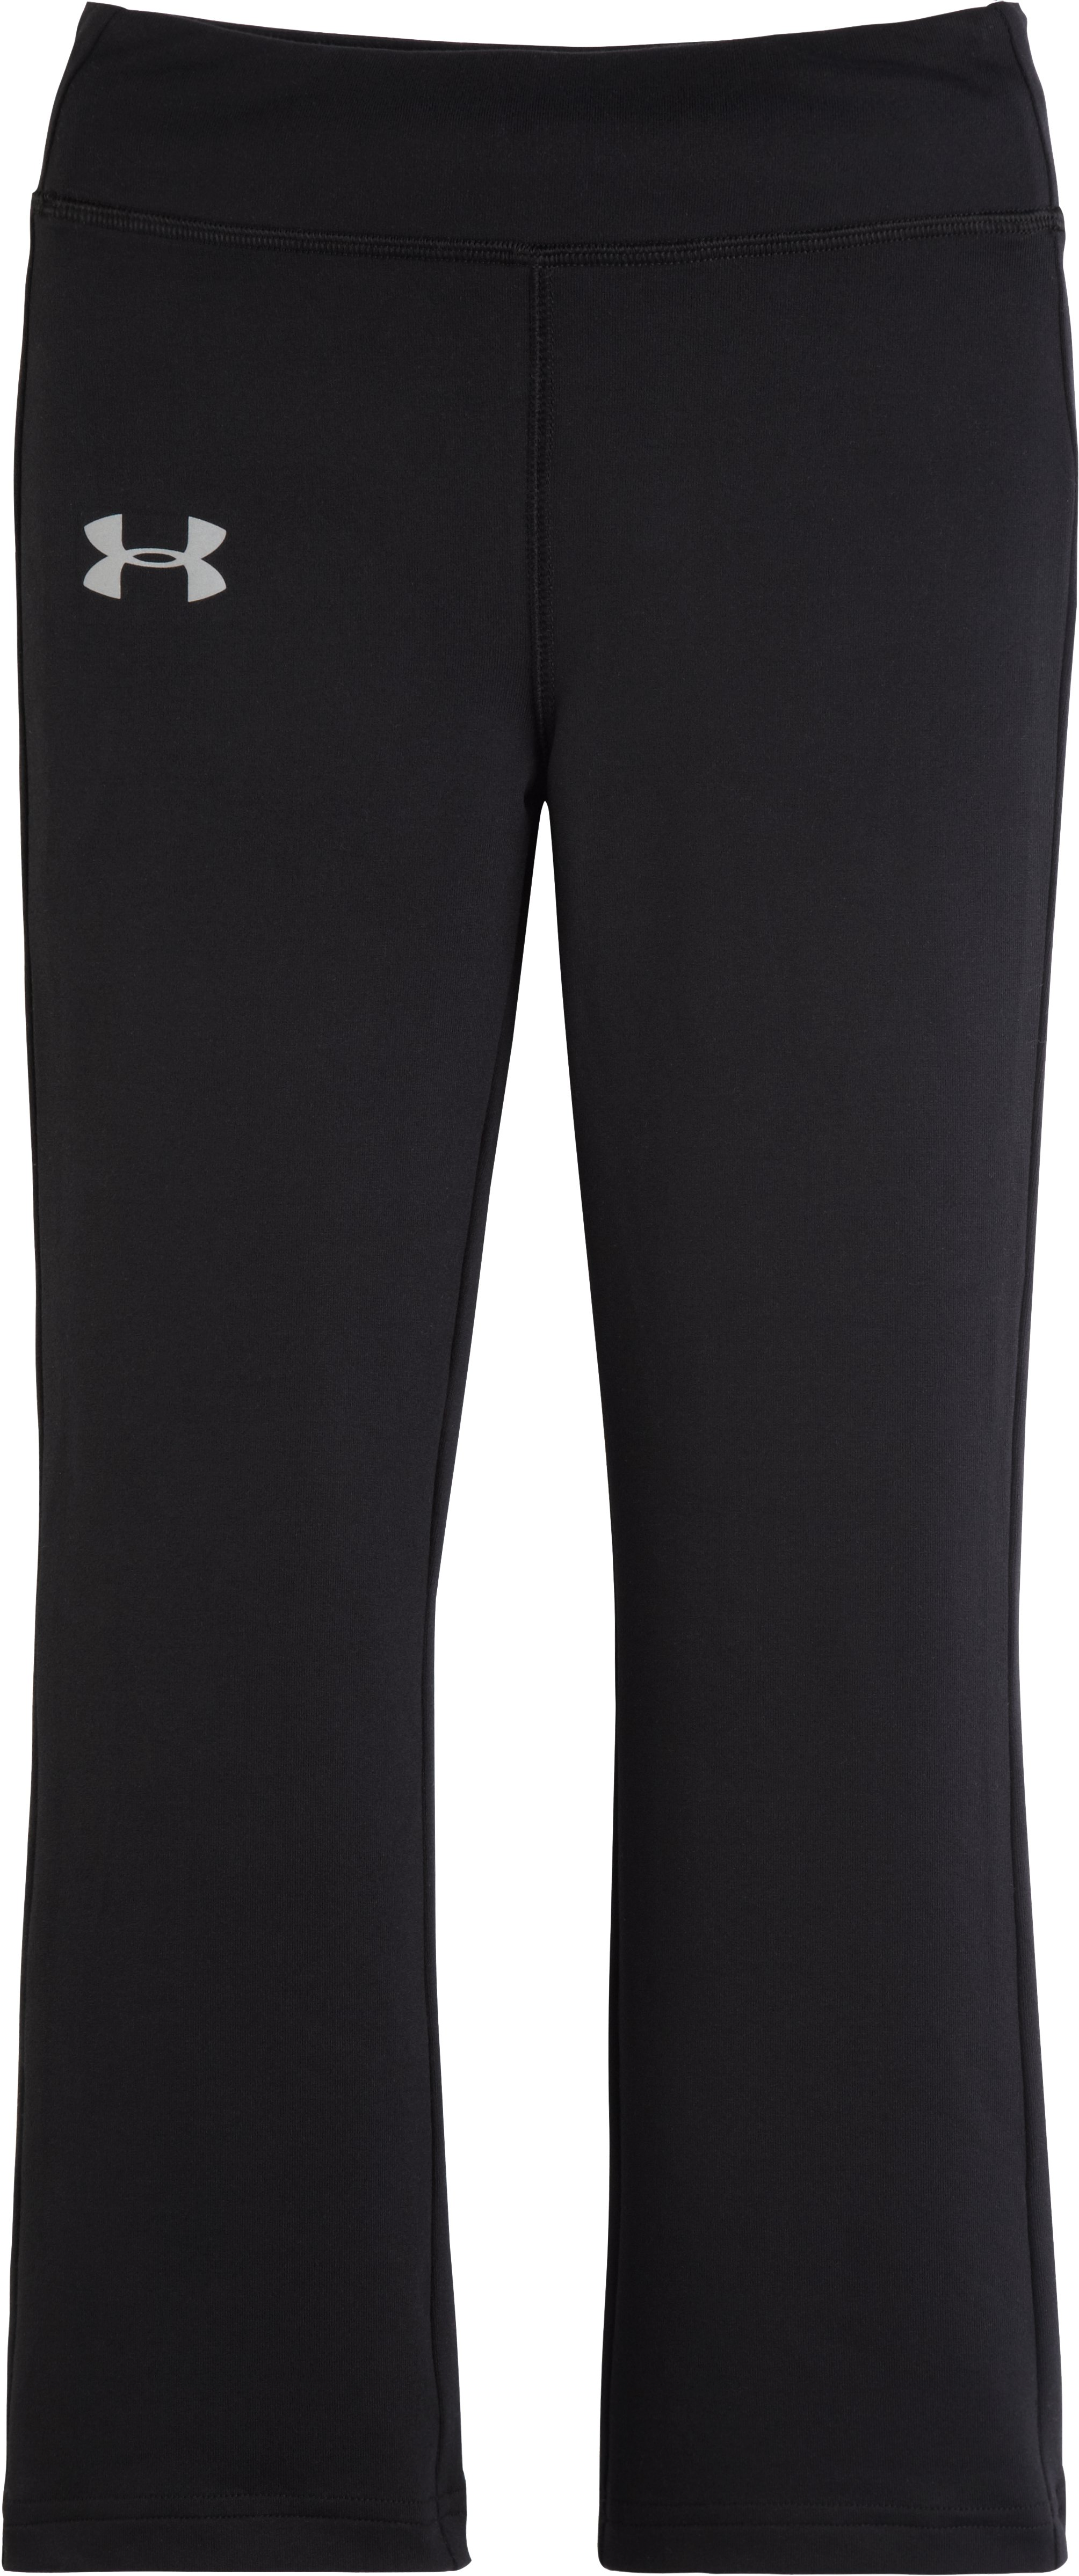 Girls' Pre-School UA Yoga Pant, Black , zoomed image